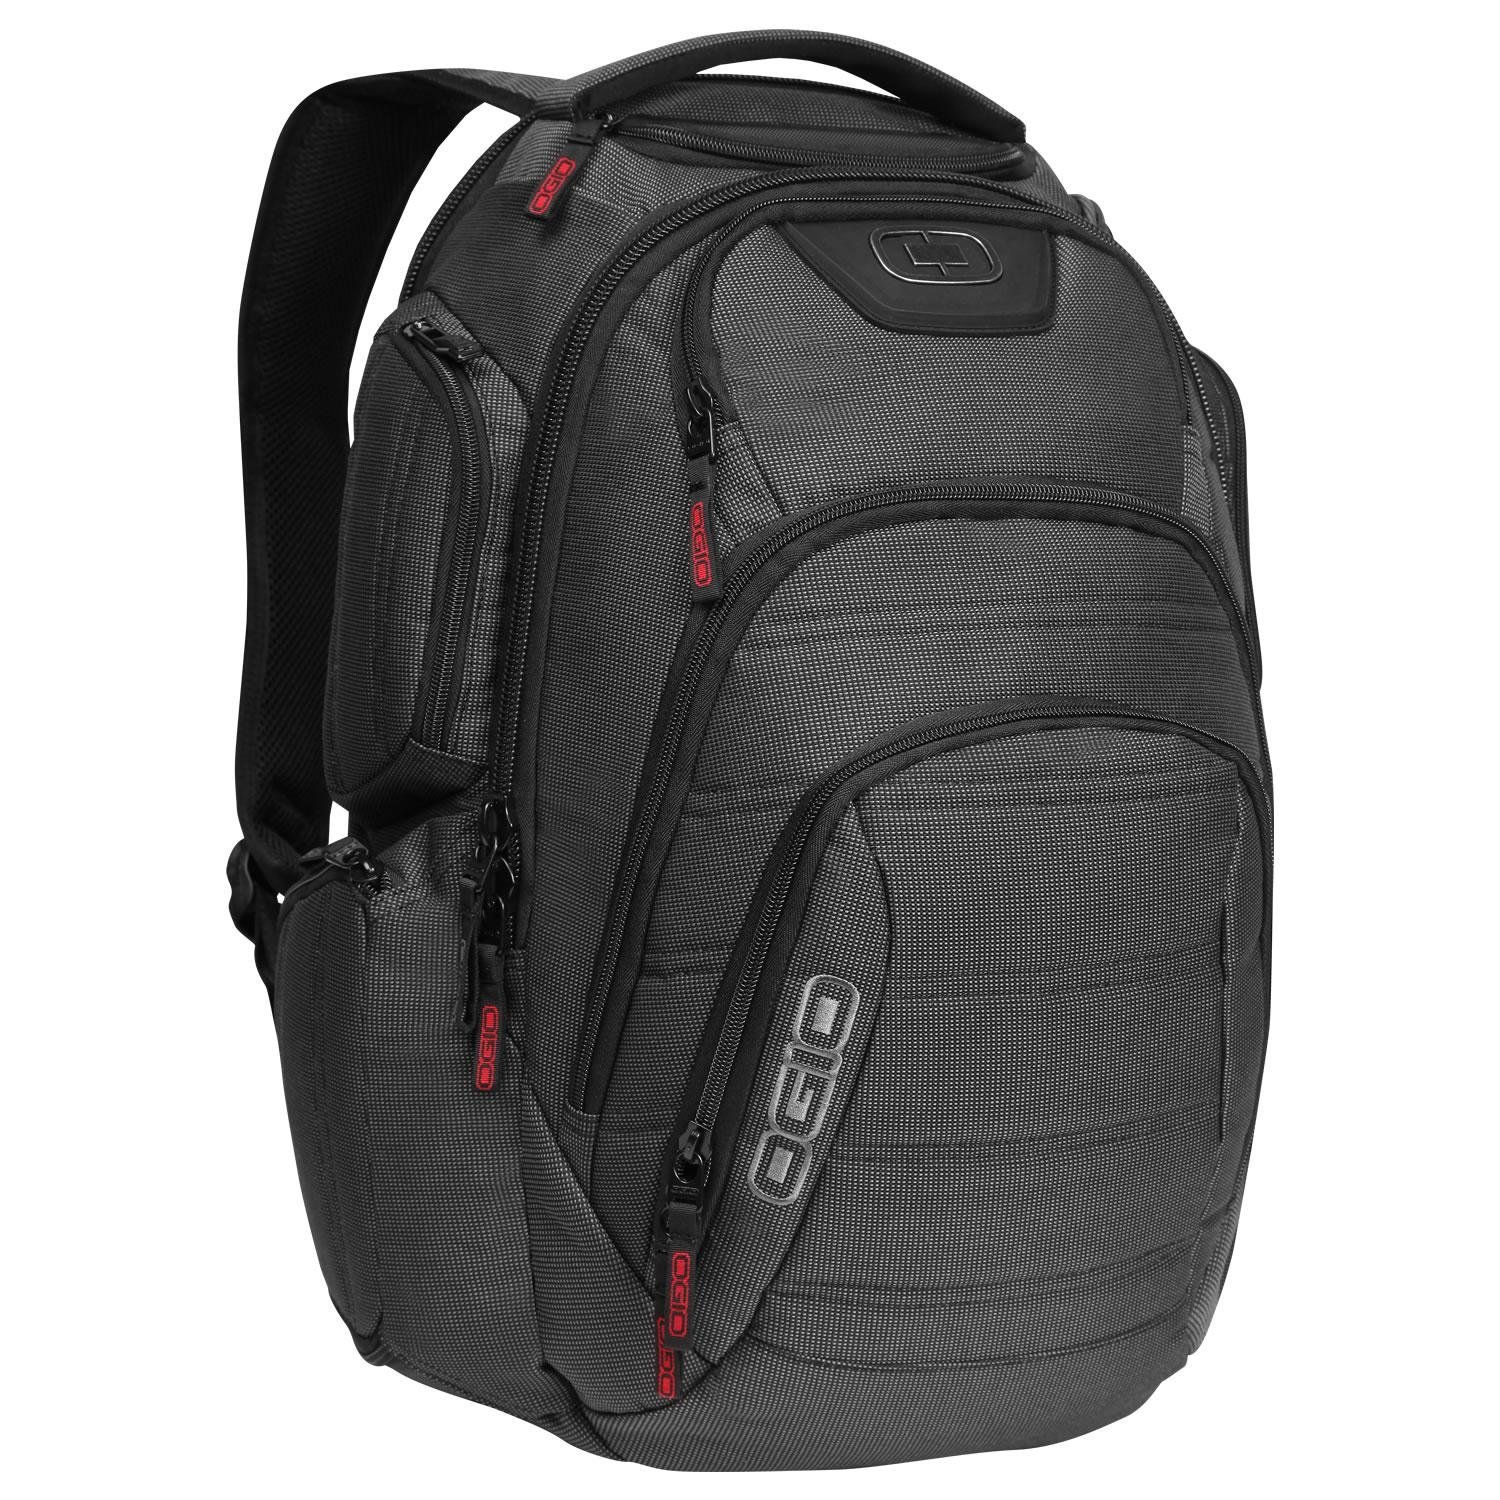 OGIO Ogio Renegade Rss Backpack, Black, International Carry-On ...